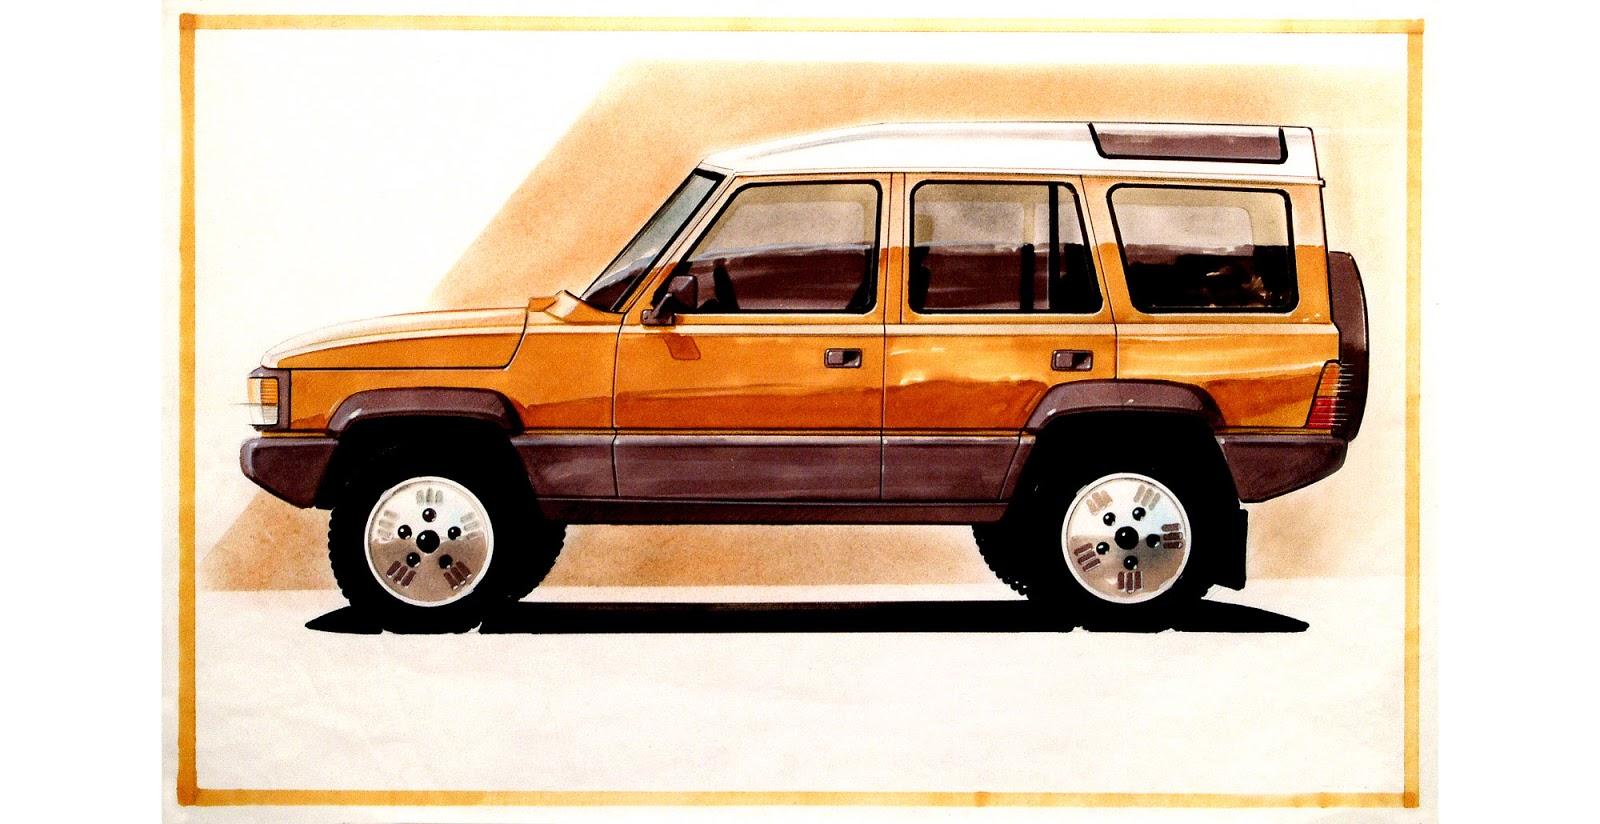 January 1986 sketch of Land Rover Discovery mk1 by Mike Sampson